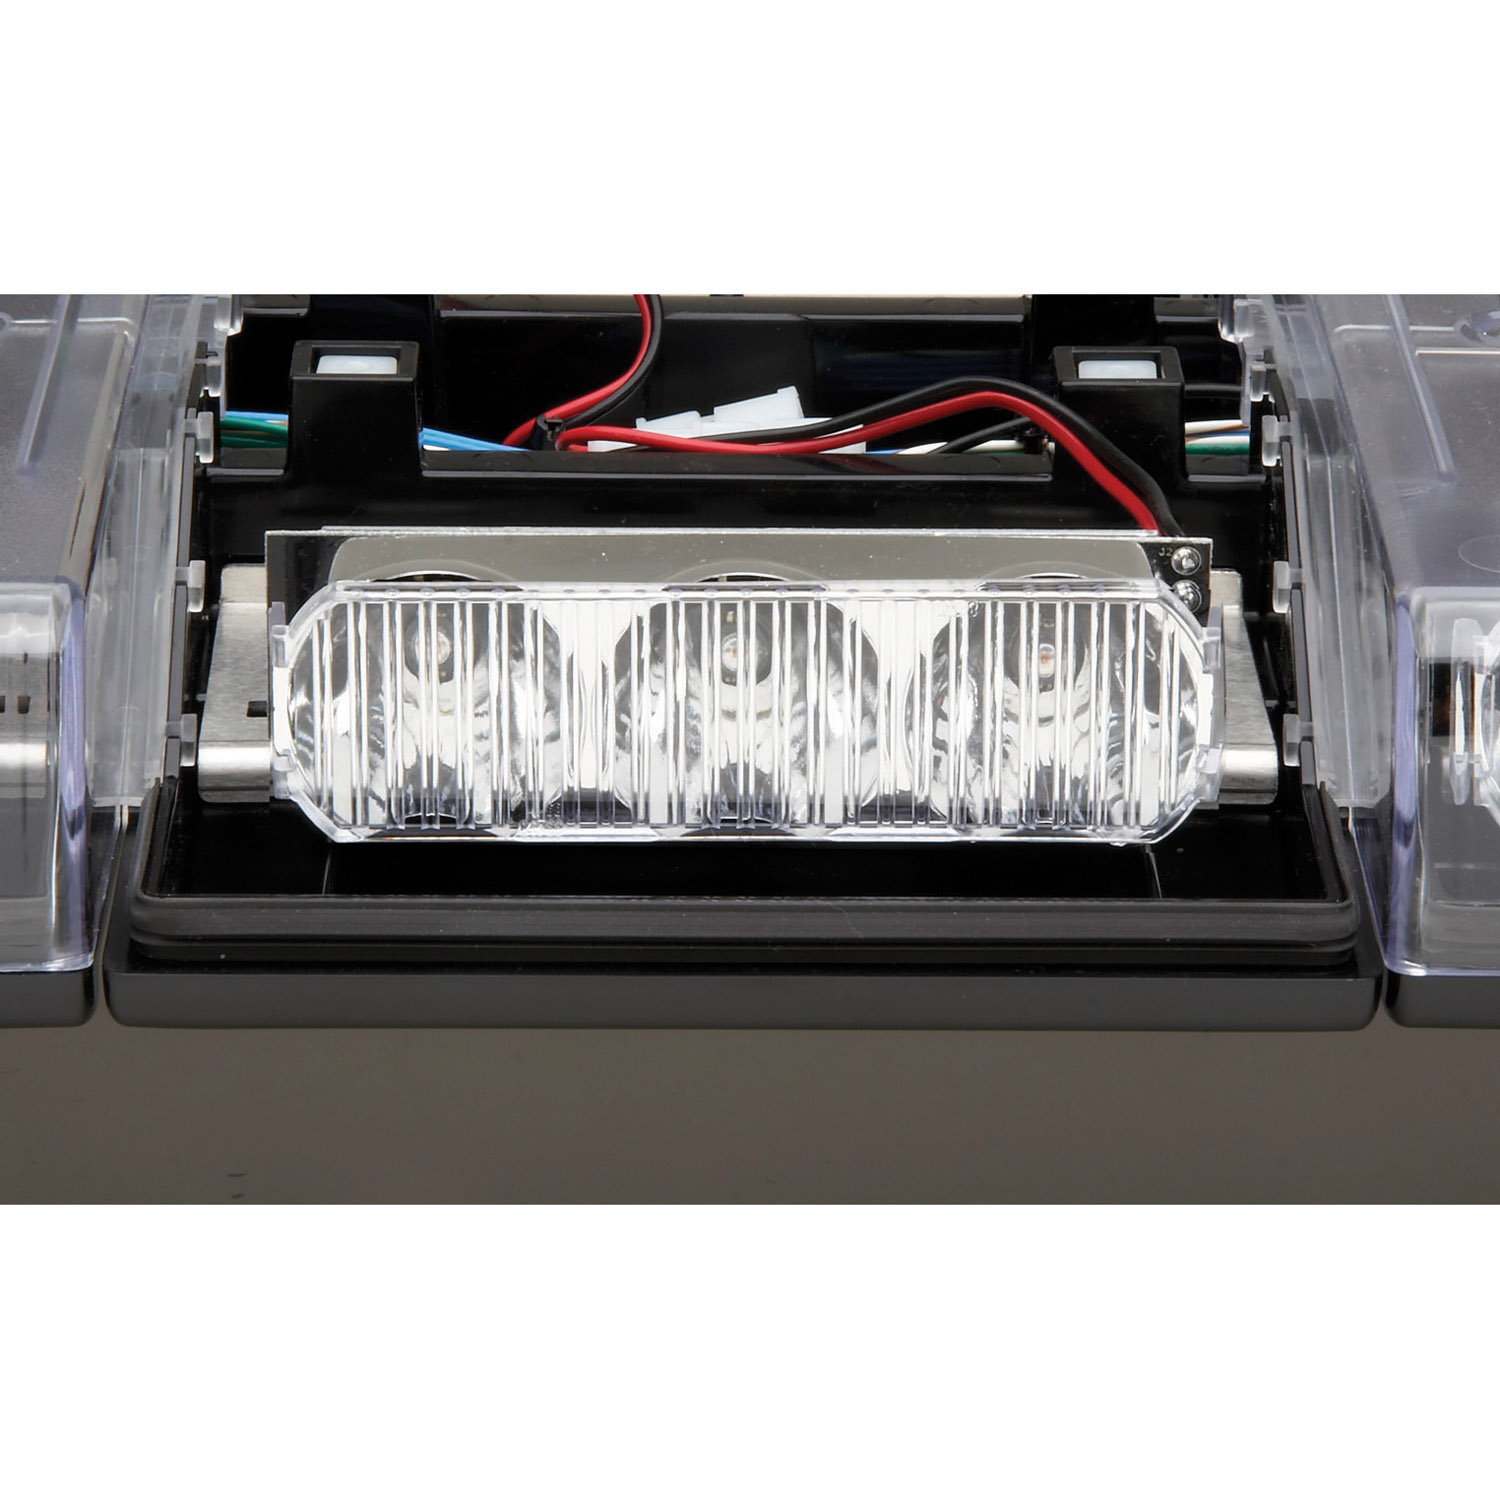 Whelen Engineering Con3 LED Add-On Head